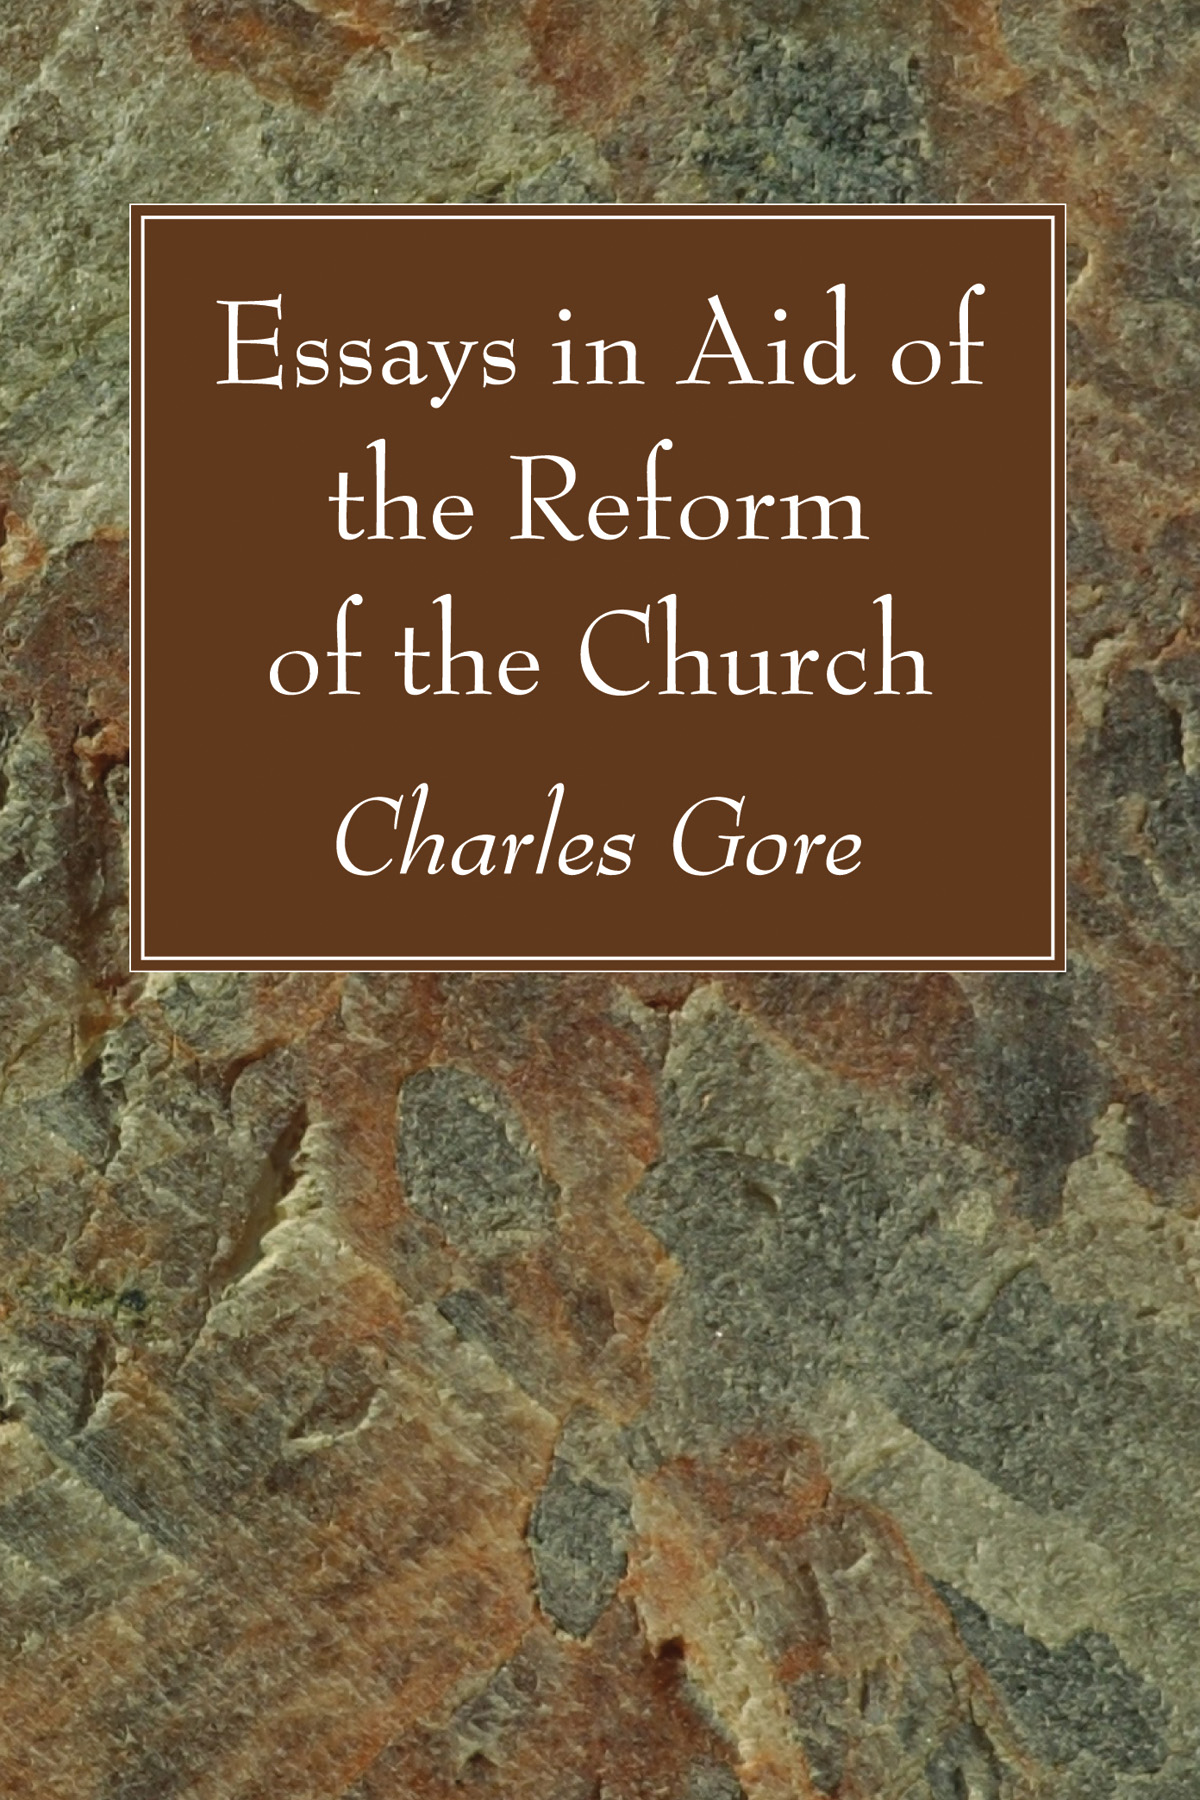 reformation of the church essay Reformation of the church essay relations sport and money essay bank words creative writing jobs wiki 2017 research methodology in paper japanese internment pie chart sample essay react essay about programming football in hindi, essay globalization disadvantages ielts essay critical thinking mathematics.